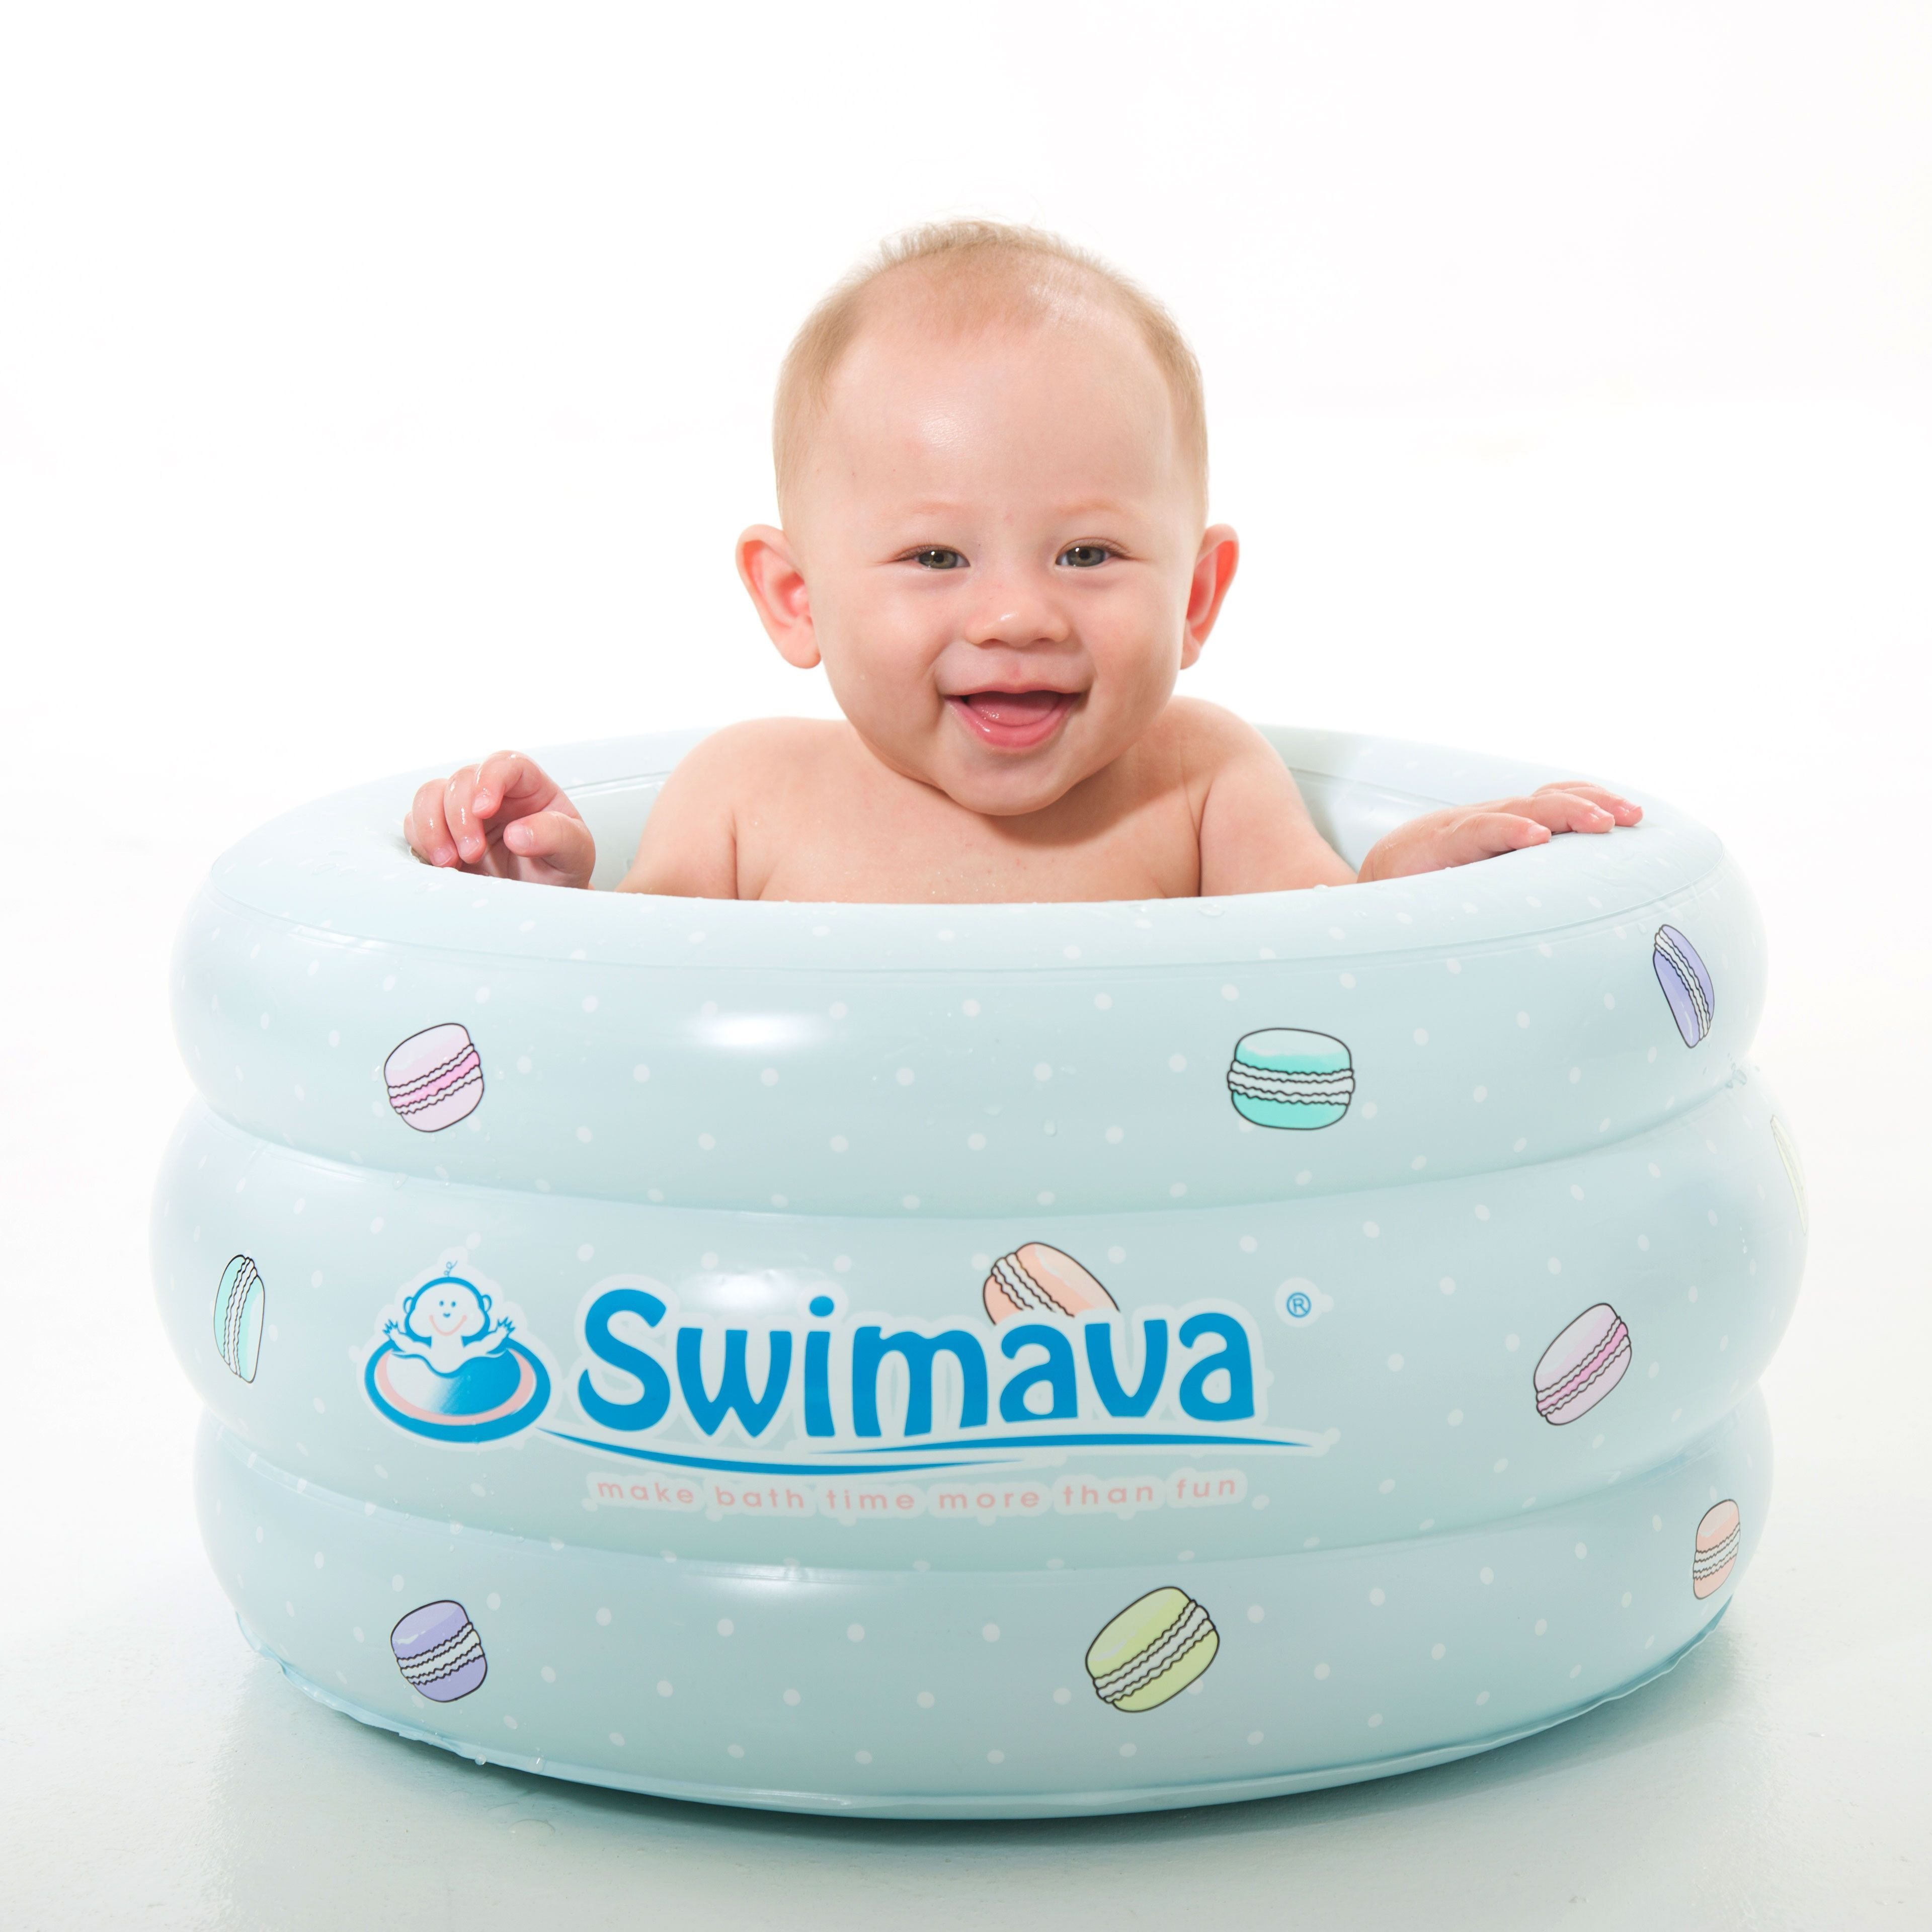 Swimava Baby Bathing Tub | P3 Swimava Le macaron Spa for baby ...